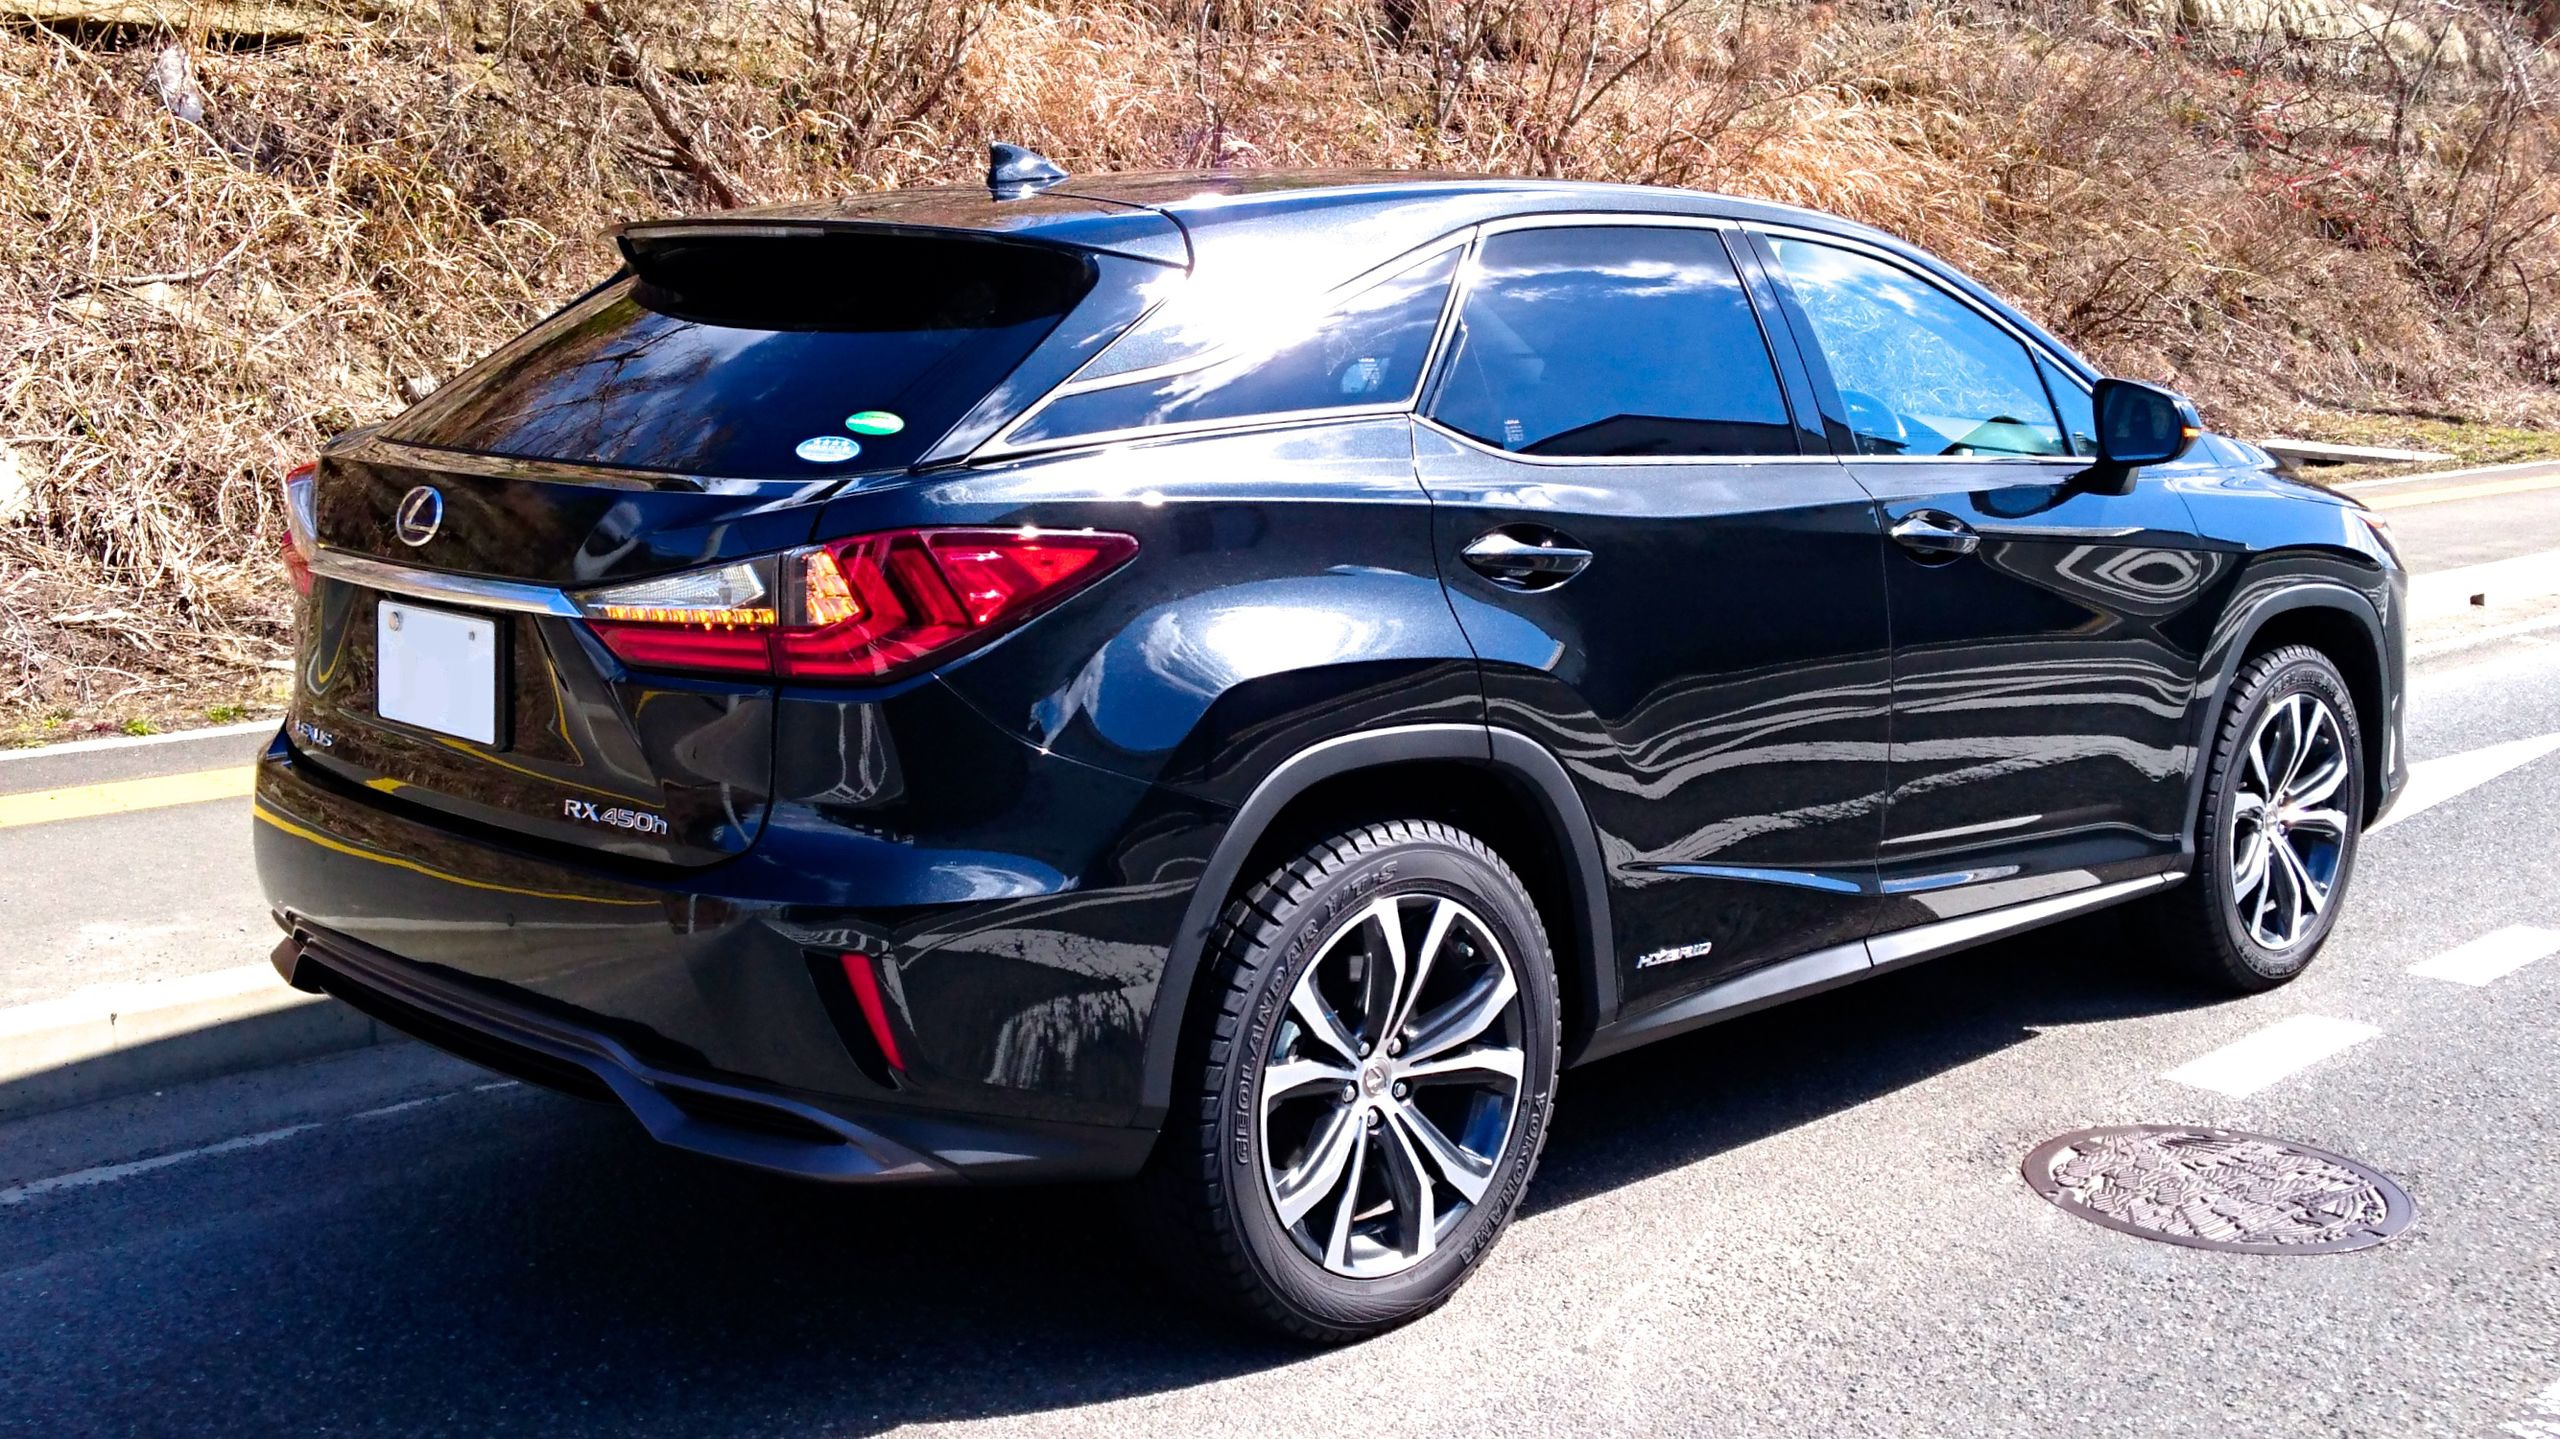 LEXUS RX450h 2016 JAPAN REAR.JPG